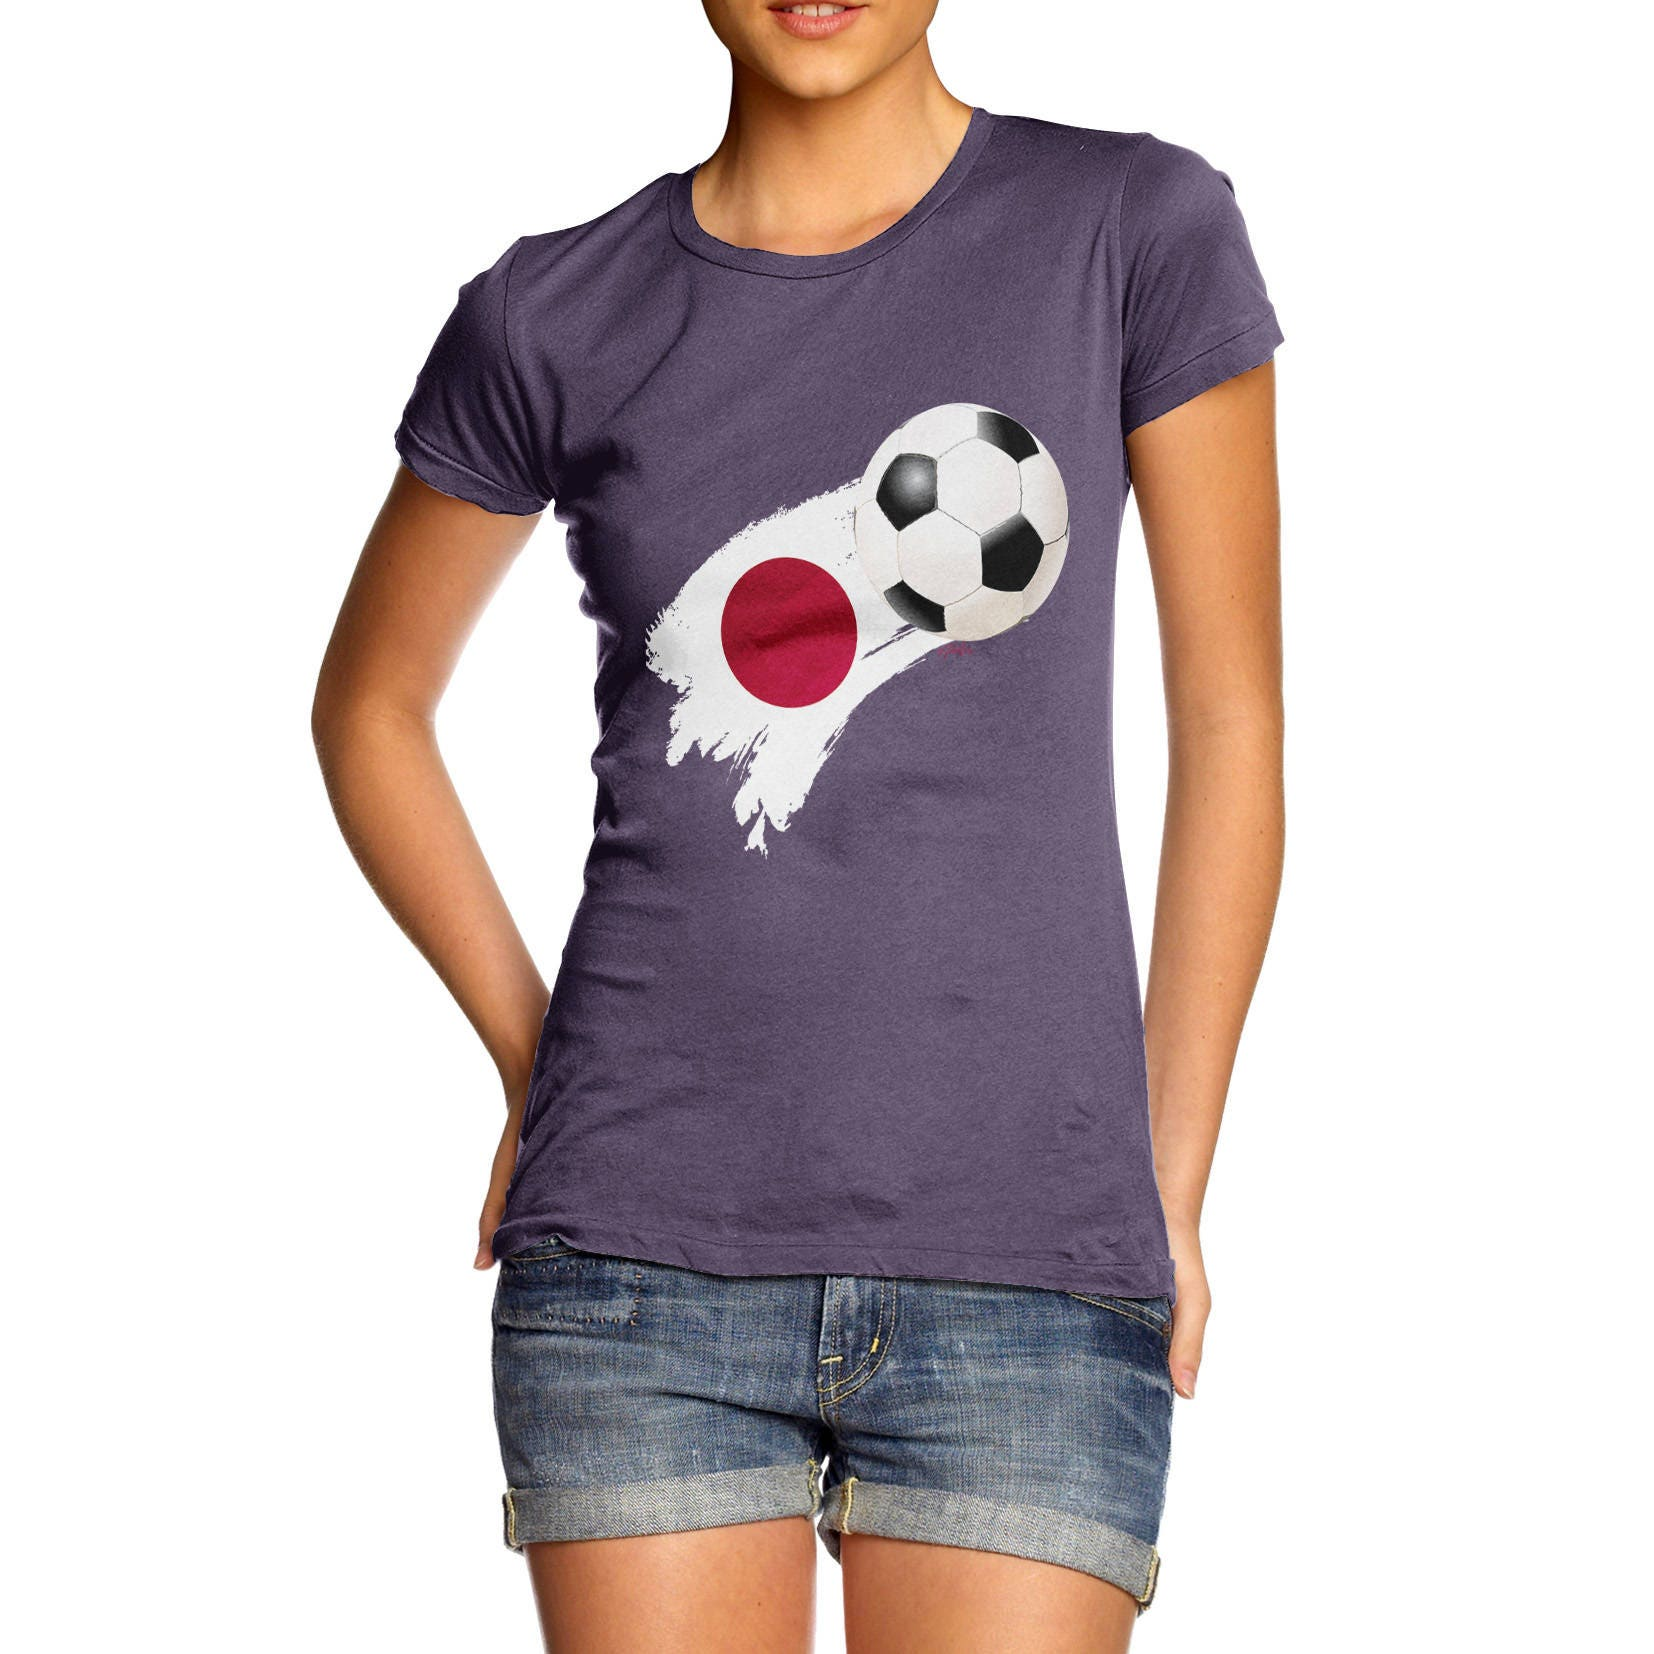 Japan Football Flag Paint Splat Womens Funny  100 Cotton TShirt Crew Neck Comfortable and Soft Classic Tee with Unique Design